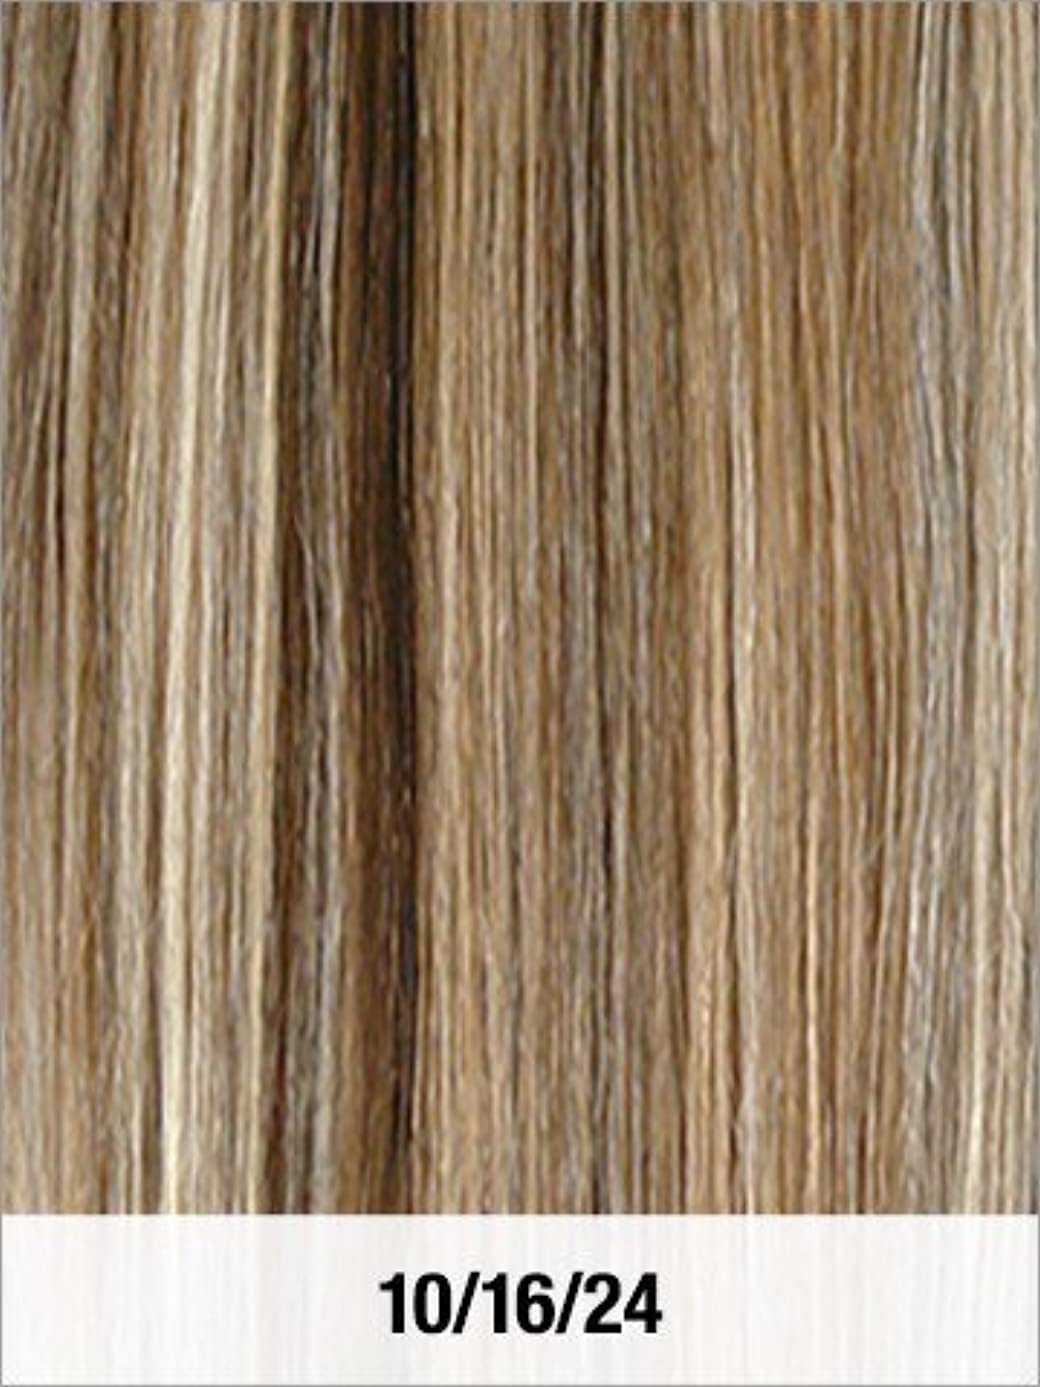 LORD & CLIFF SEVEN PIECE STRAIGHT REMY HAIR CLIP IN EXTENSION 20